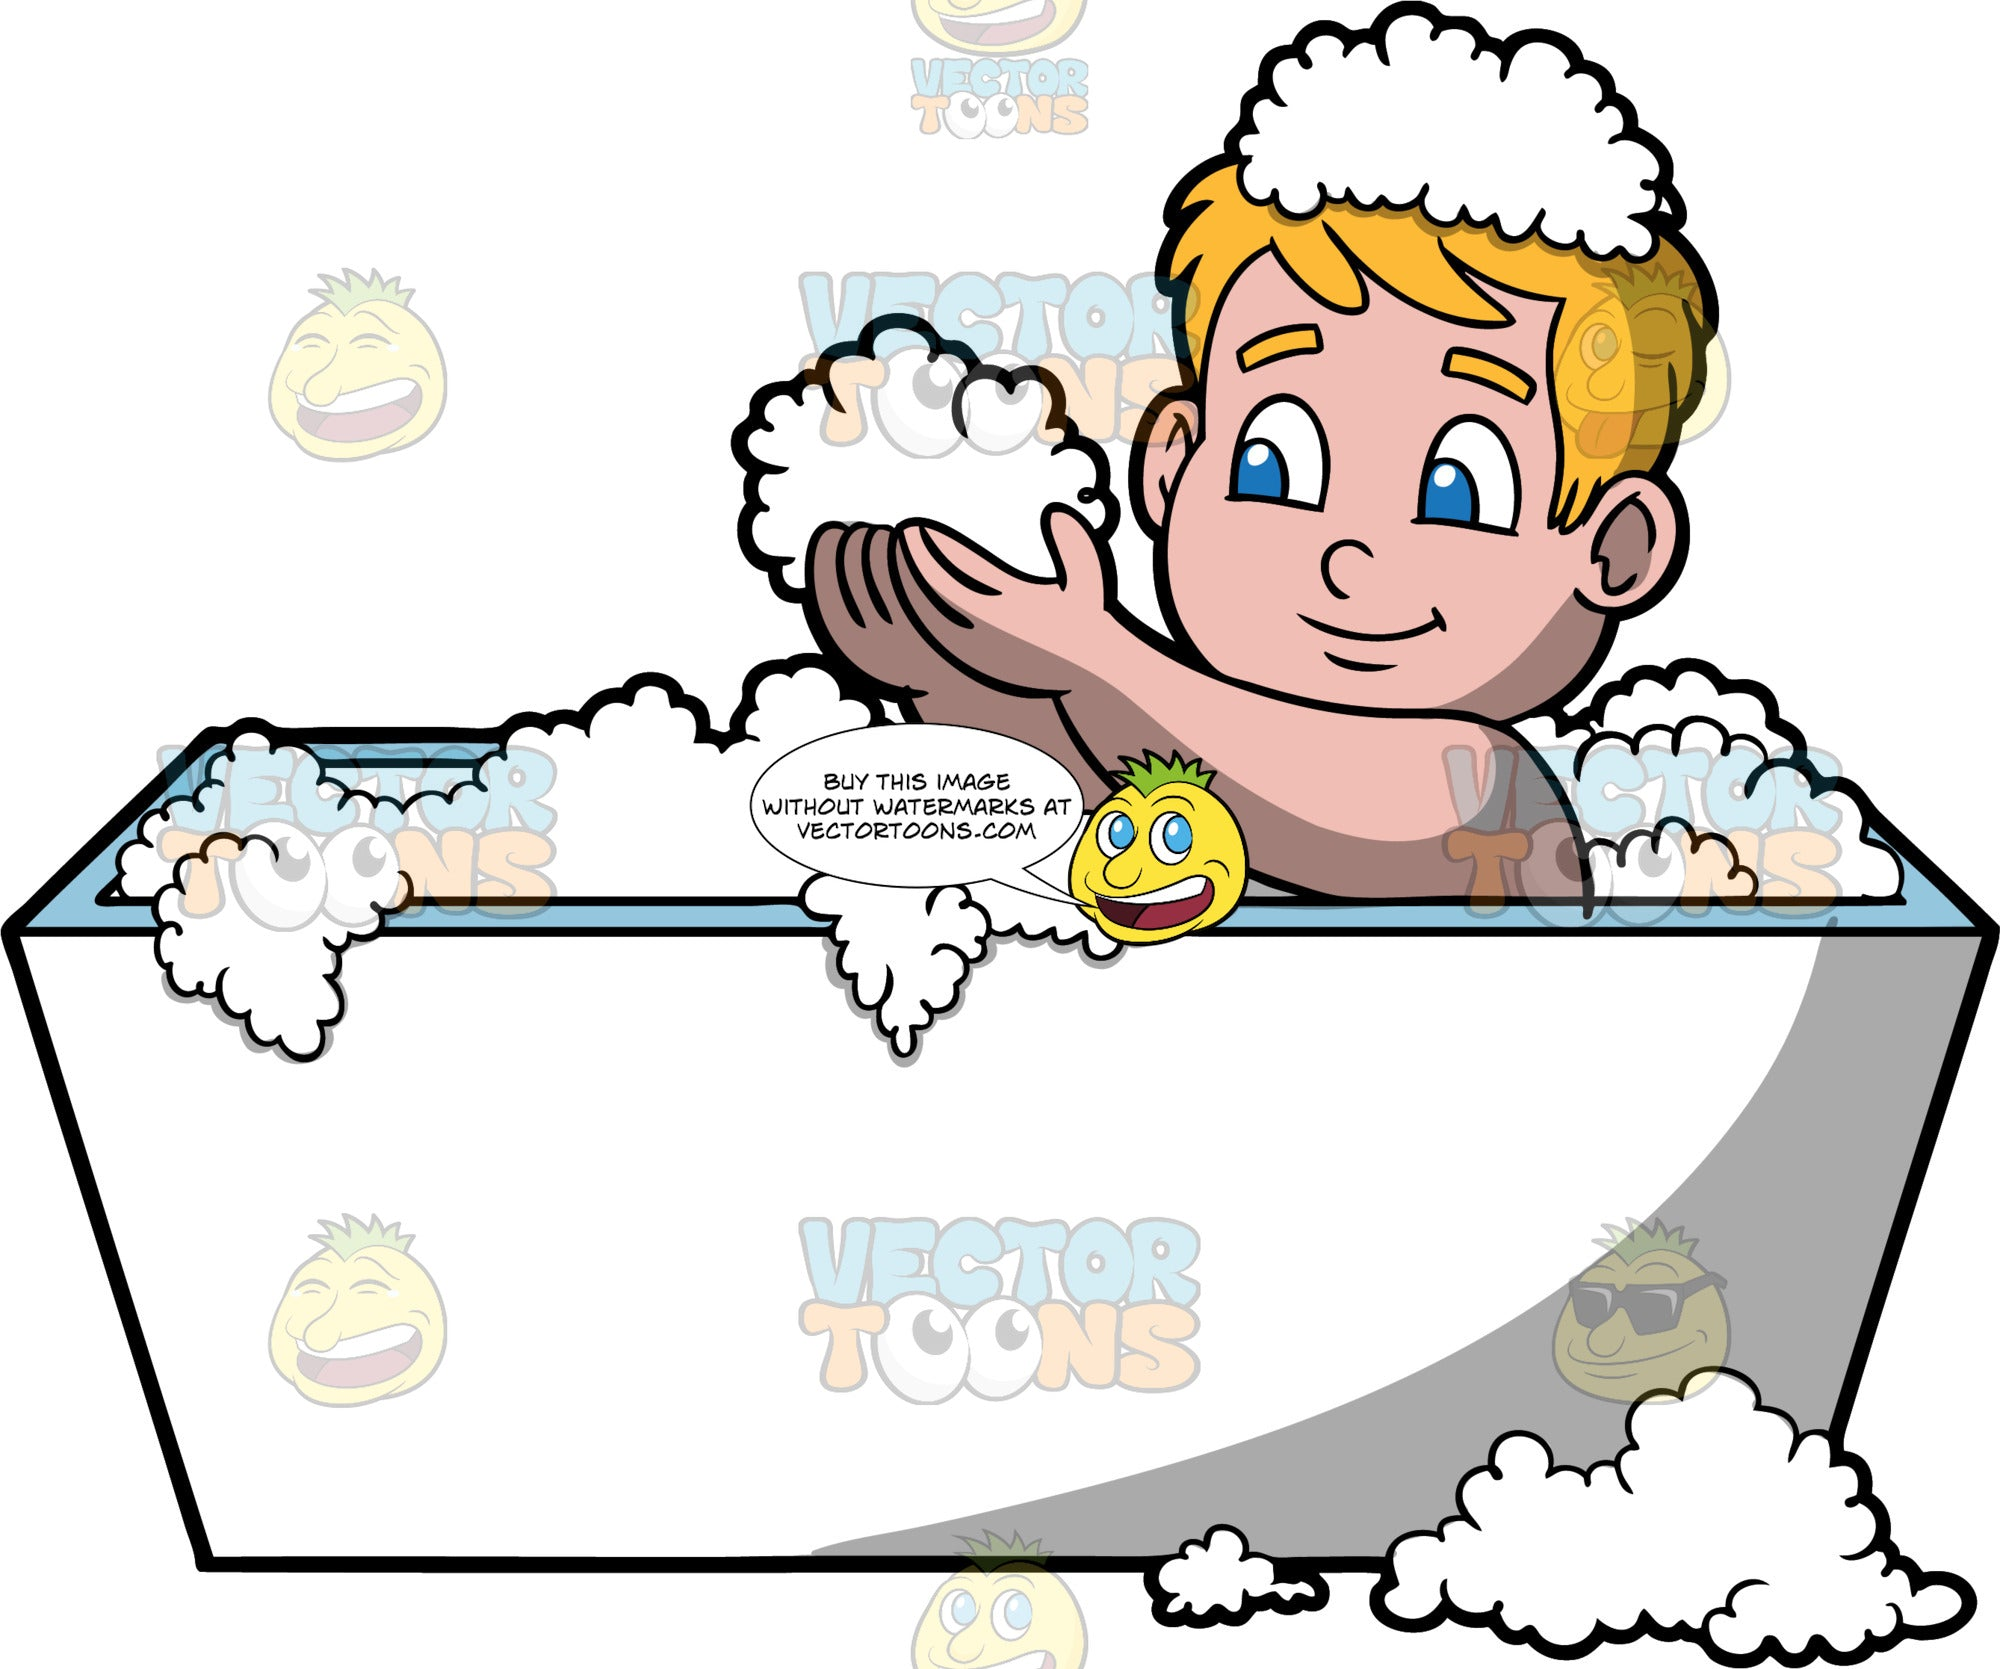 Young Sam Having Fun In The Tub. A boy sitting in a rectangular white bathtub filled with bubbles, holding a handful of bubbles in his hands